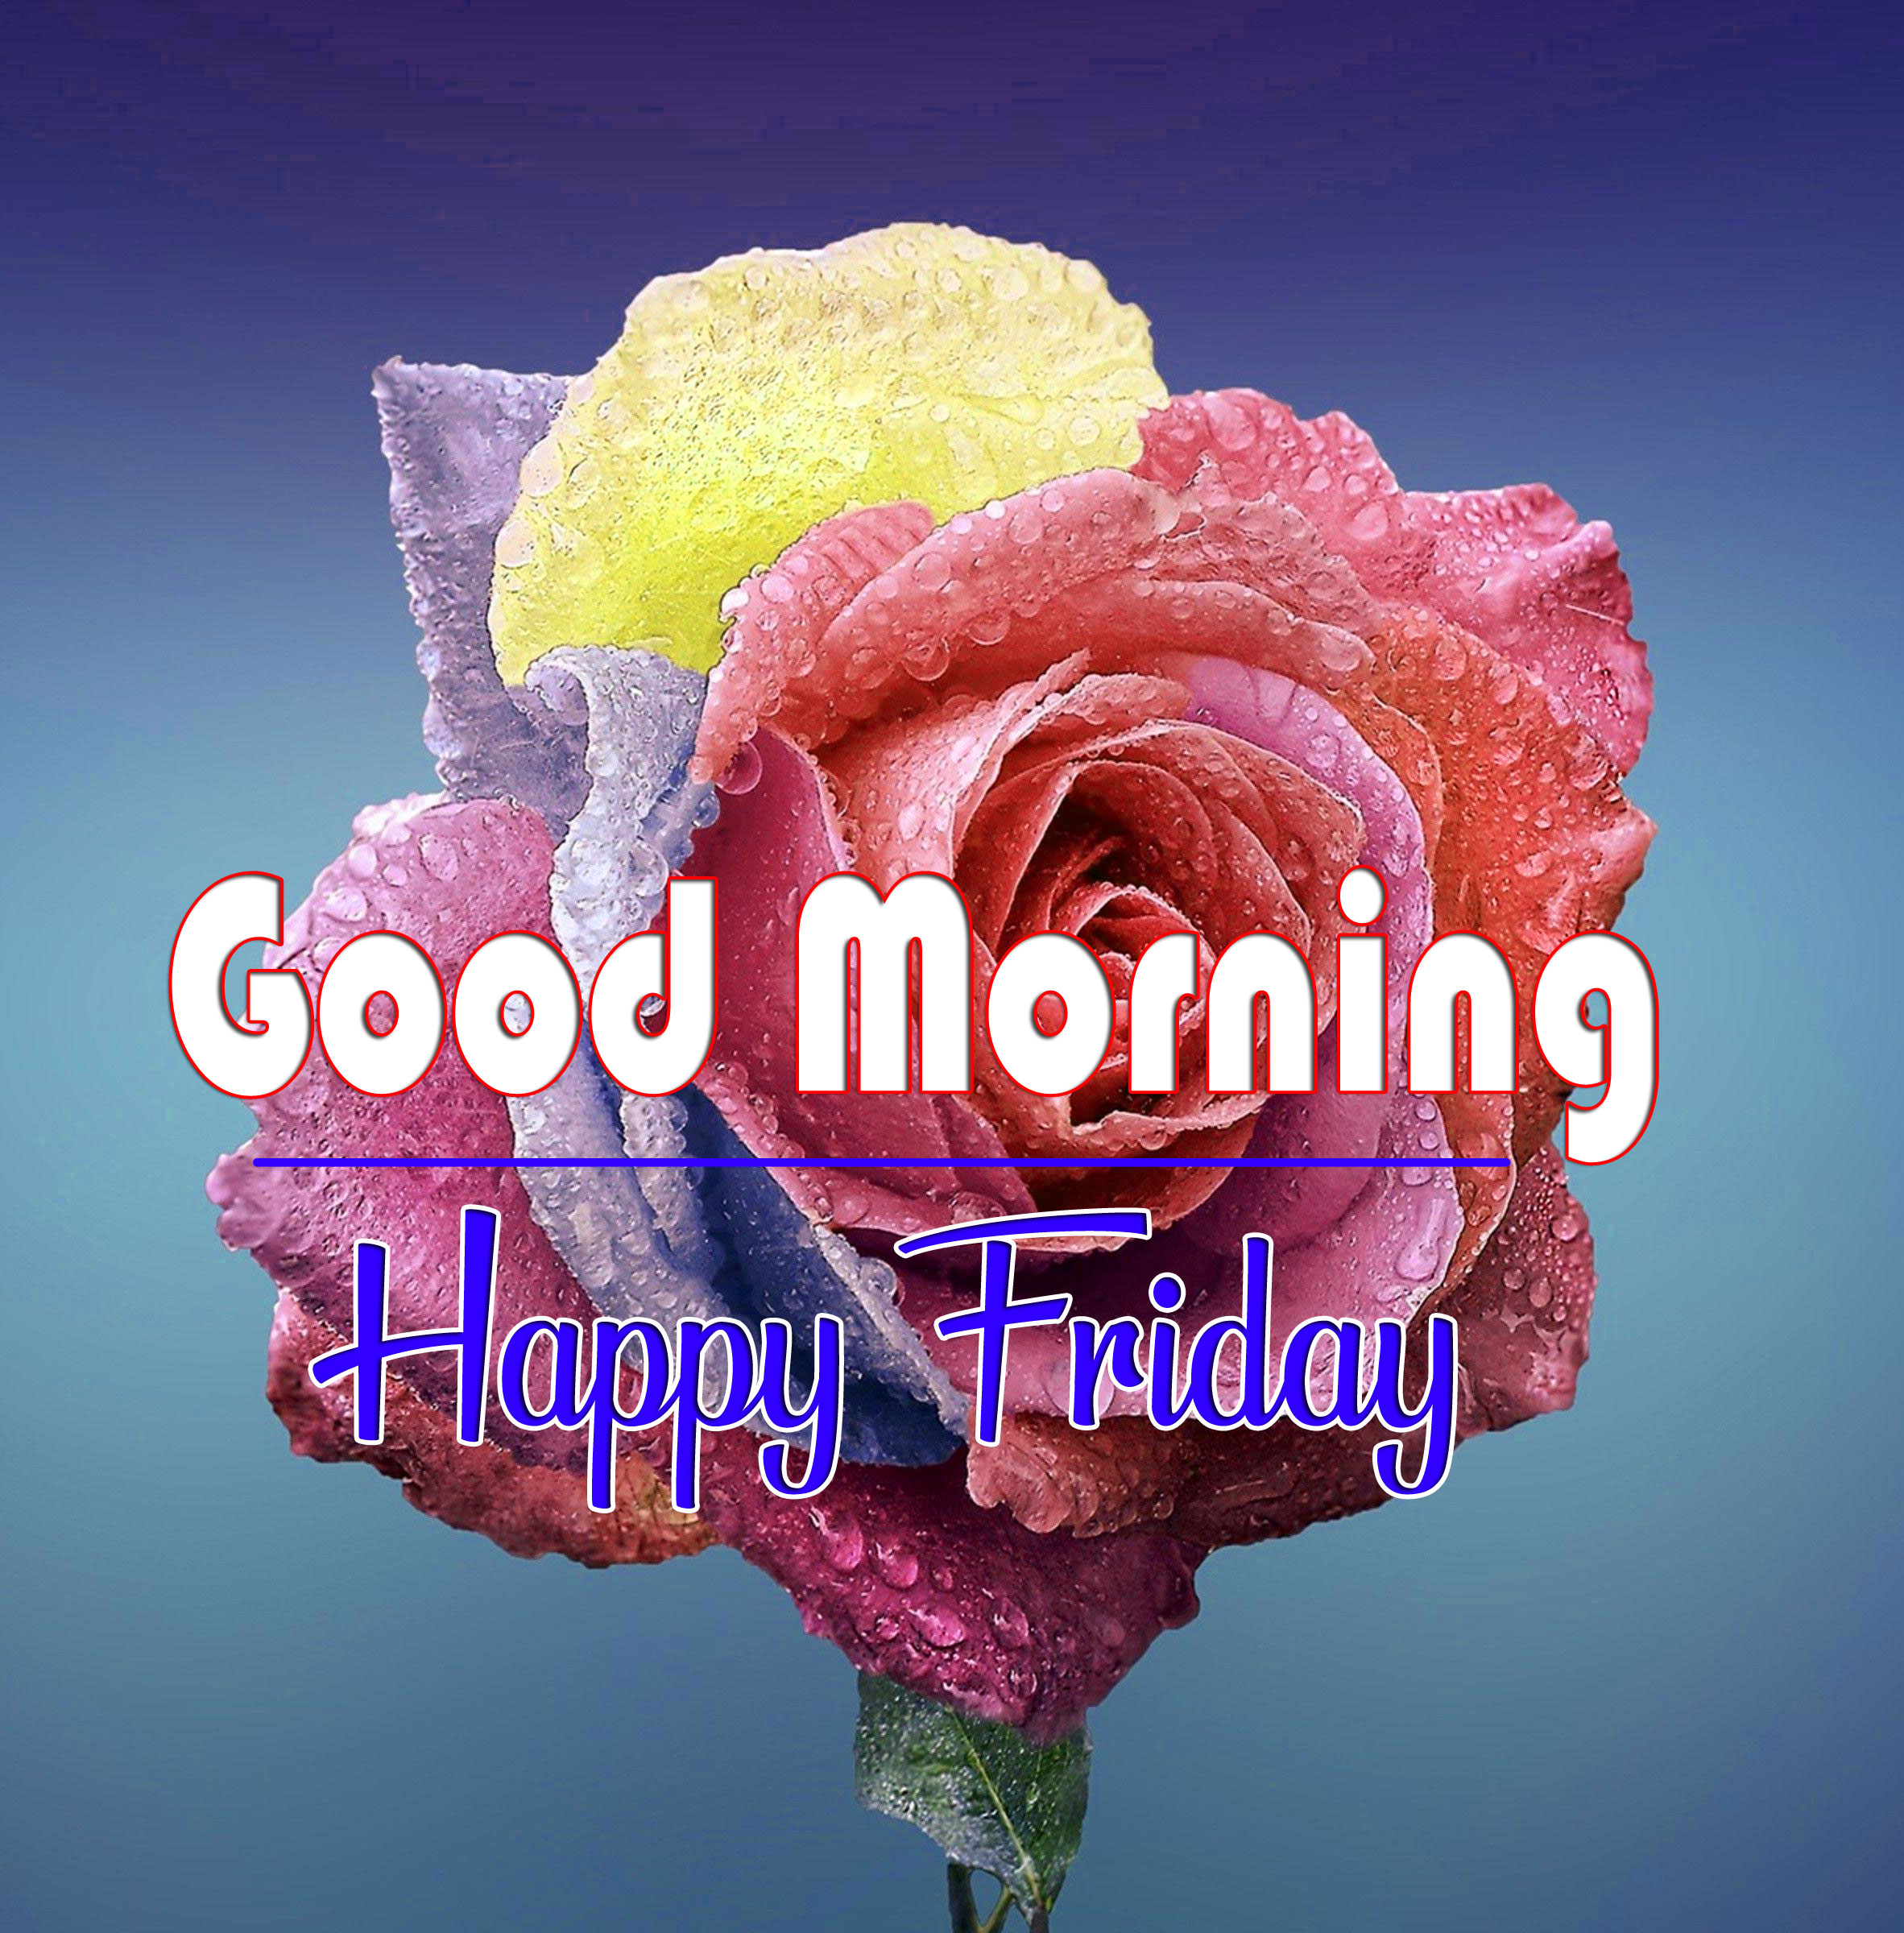 Free HD friday Good morning Wishes Images Download 2